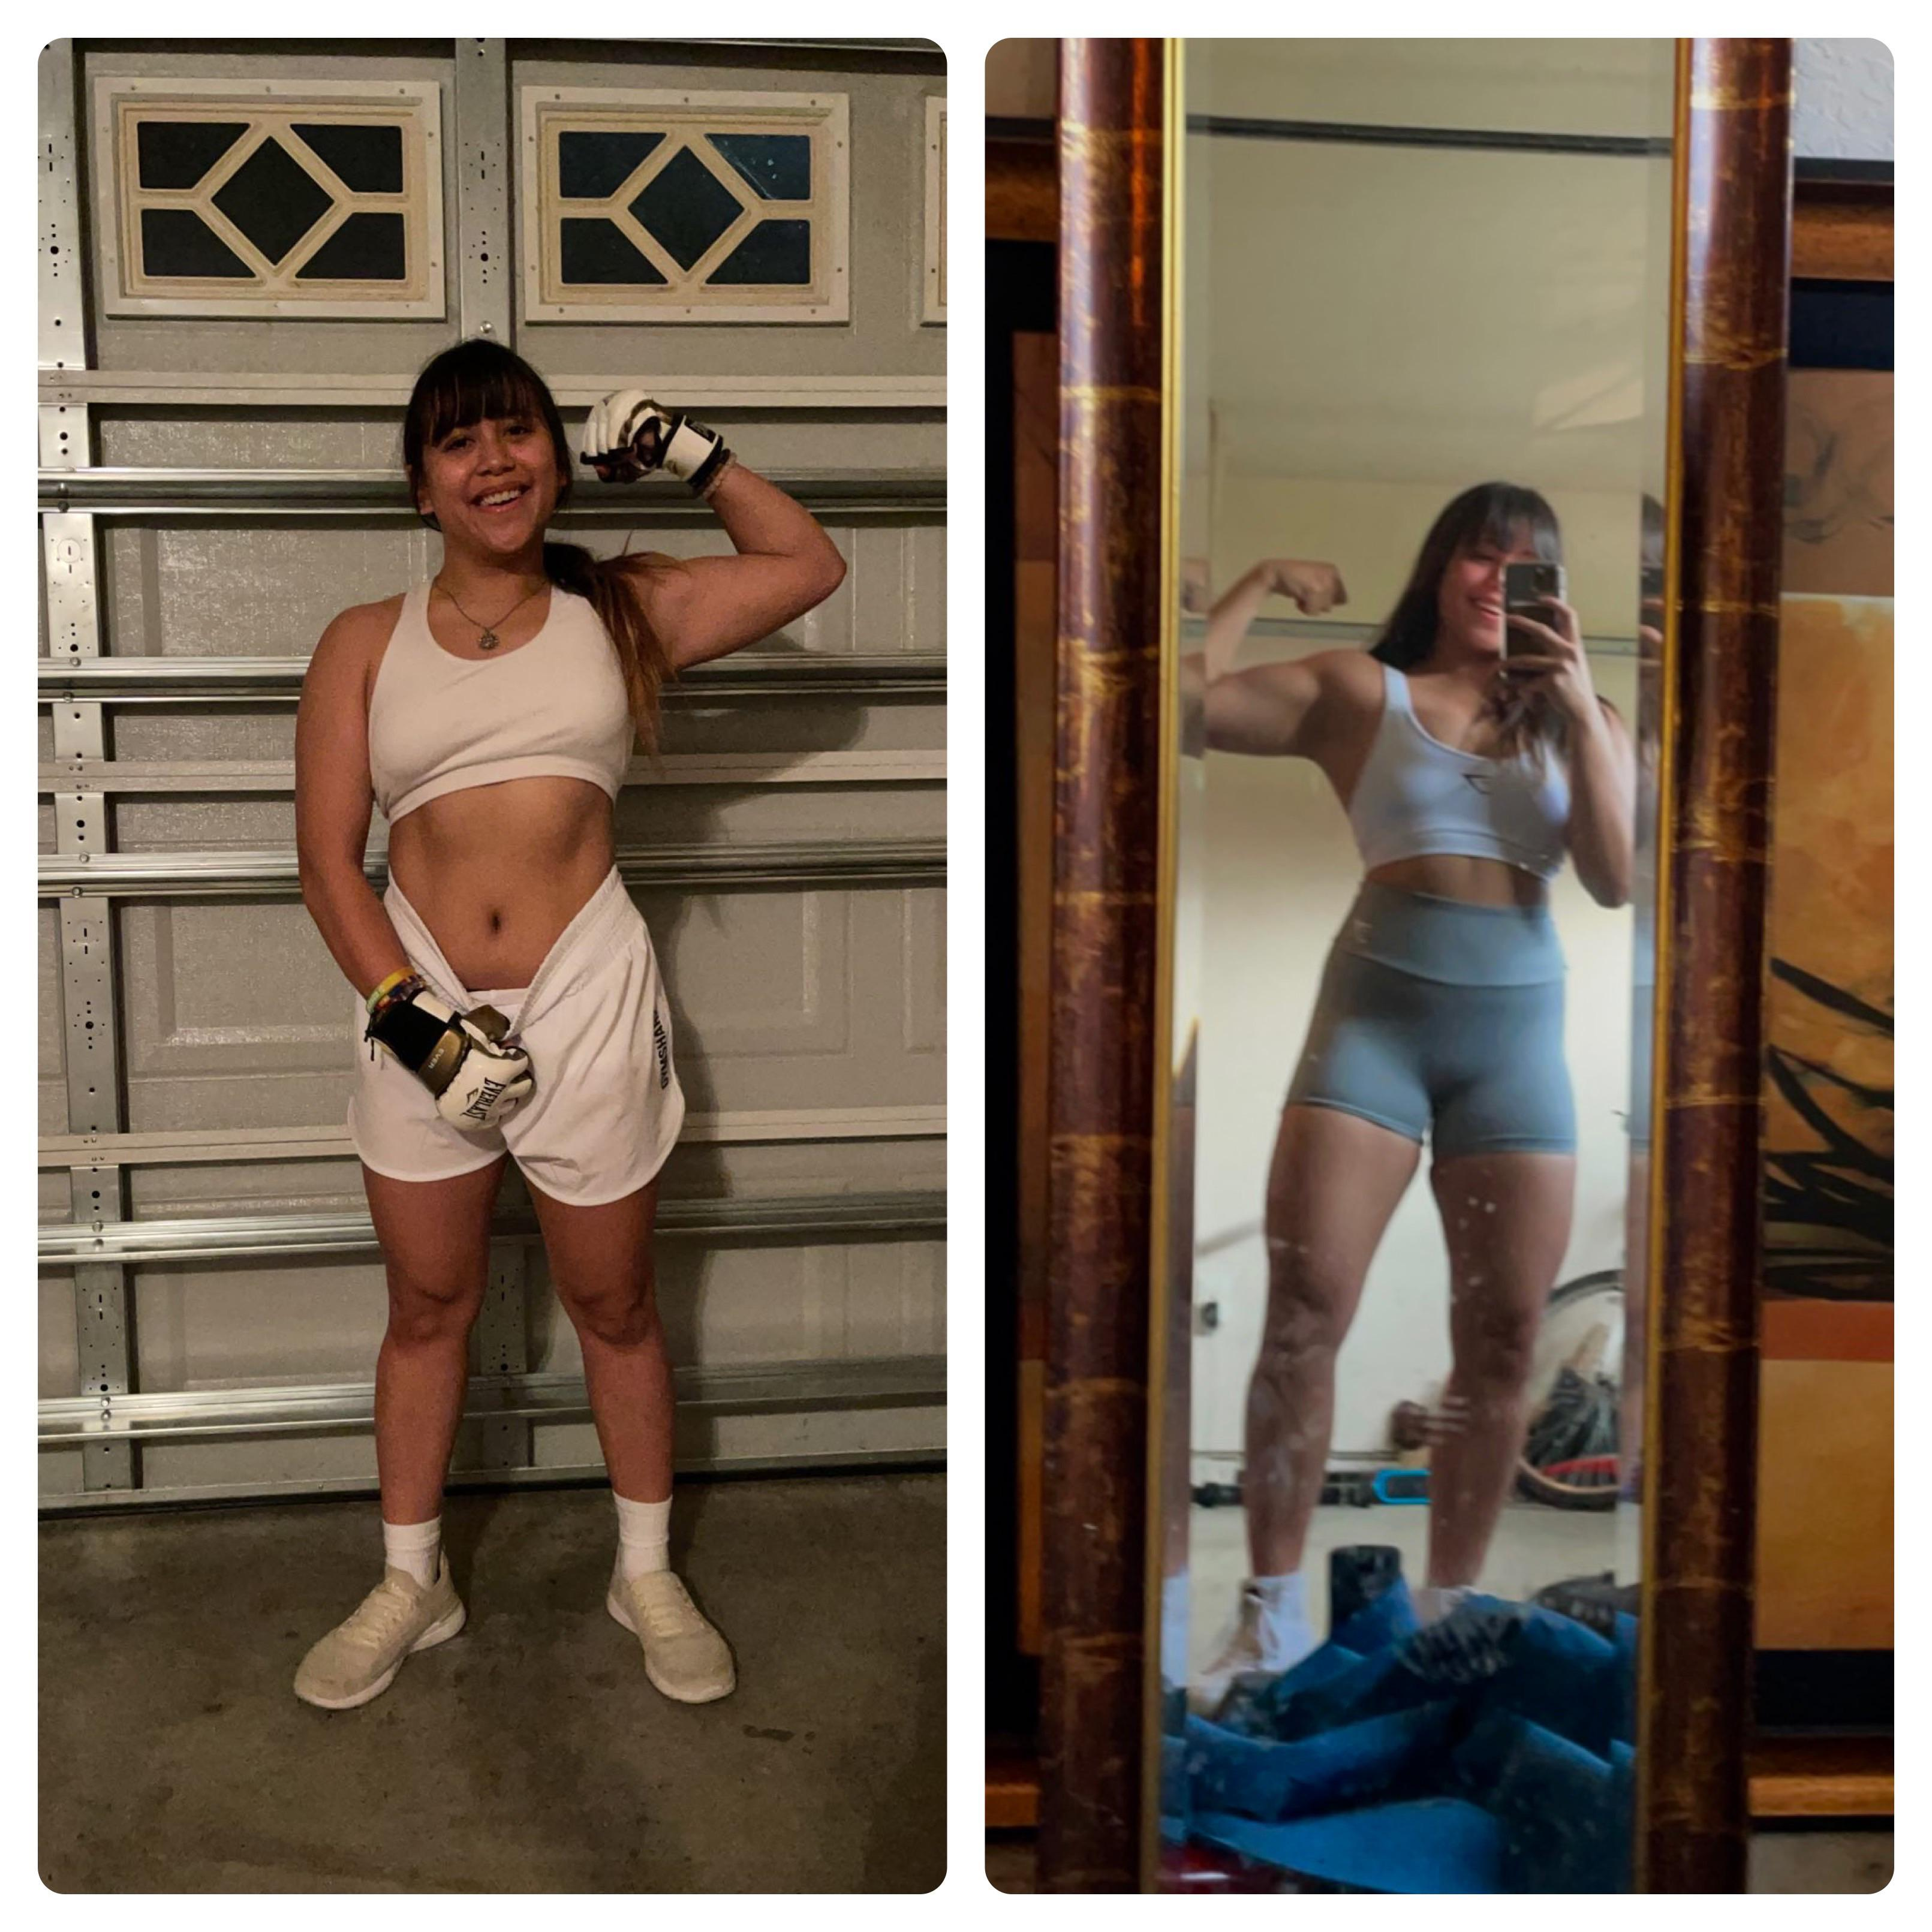 12 lbs Fat Loss Before and After 4 feet 11 Female 132 lbs to 120 lbs